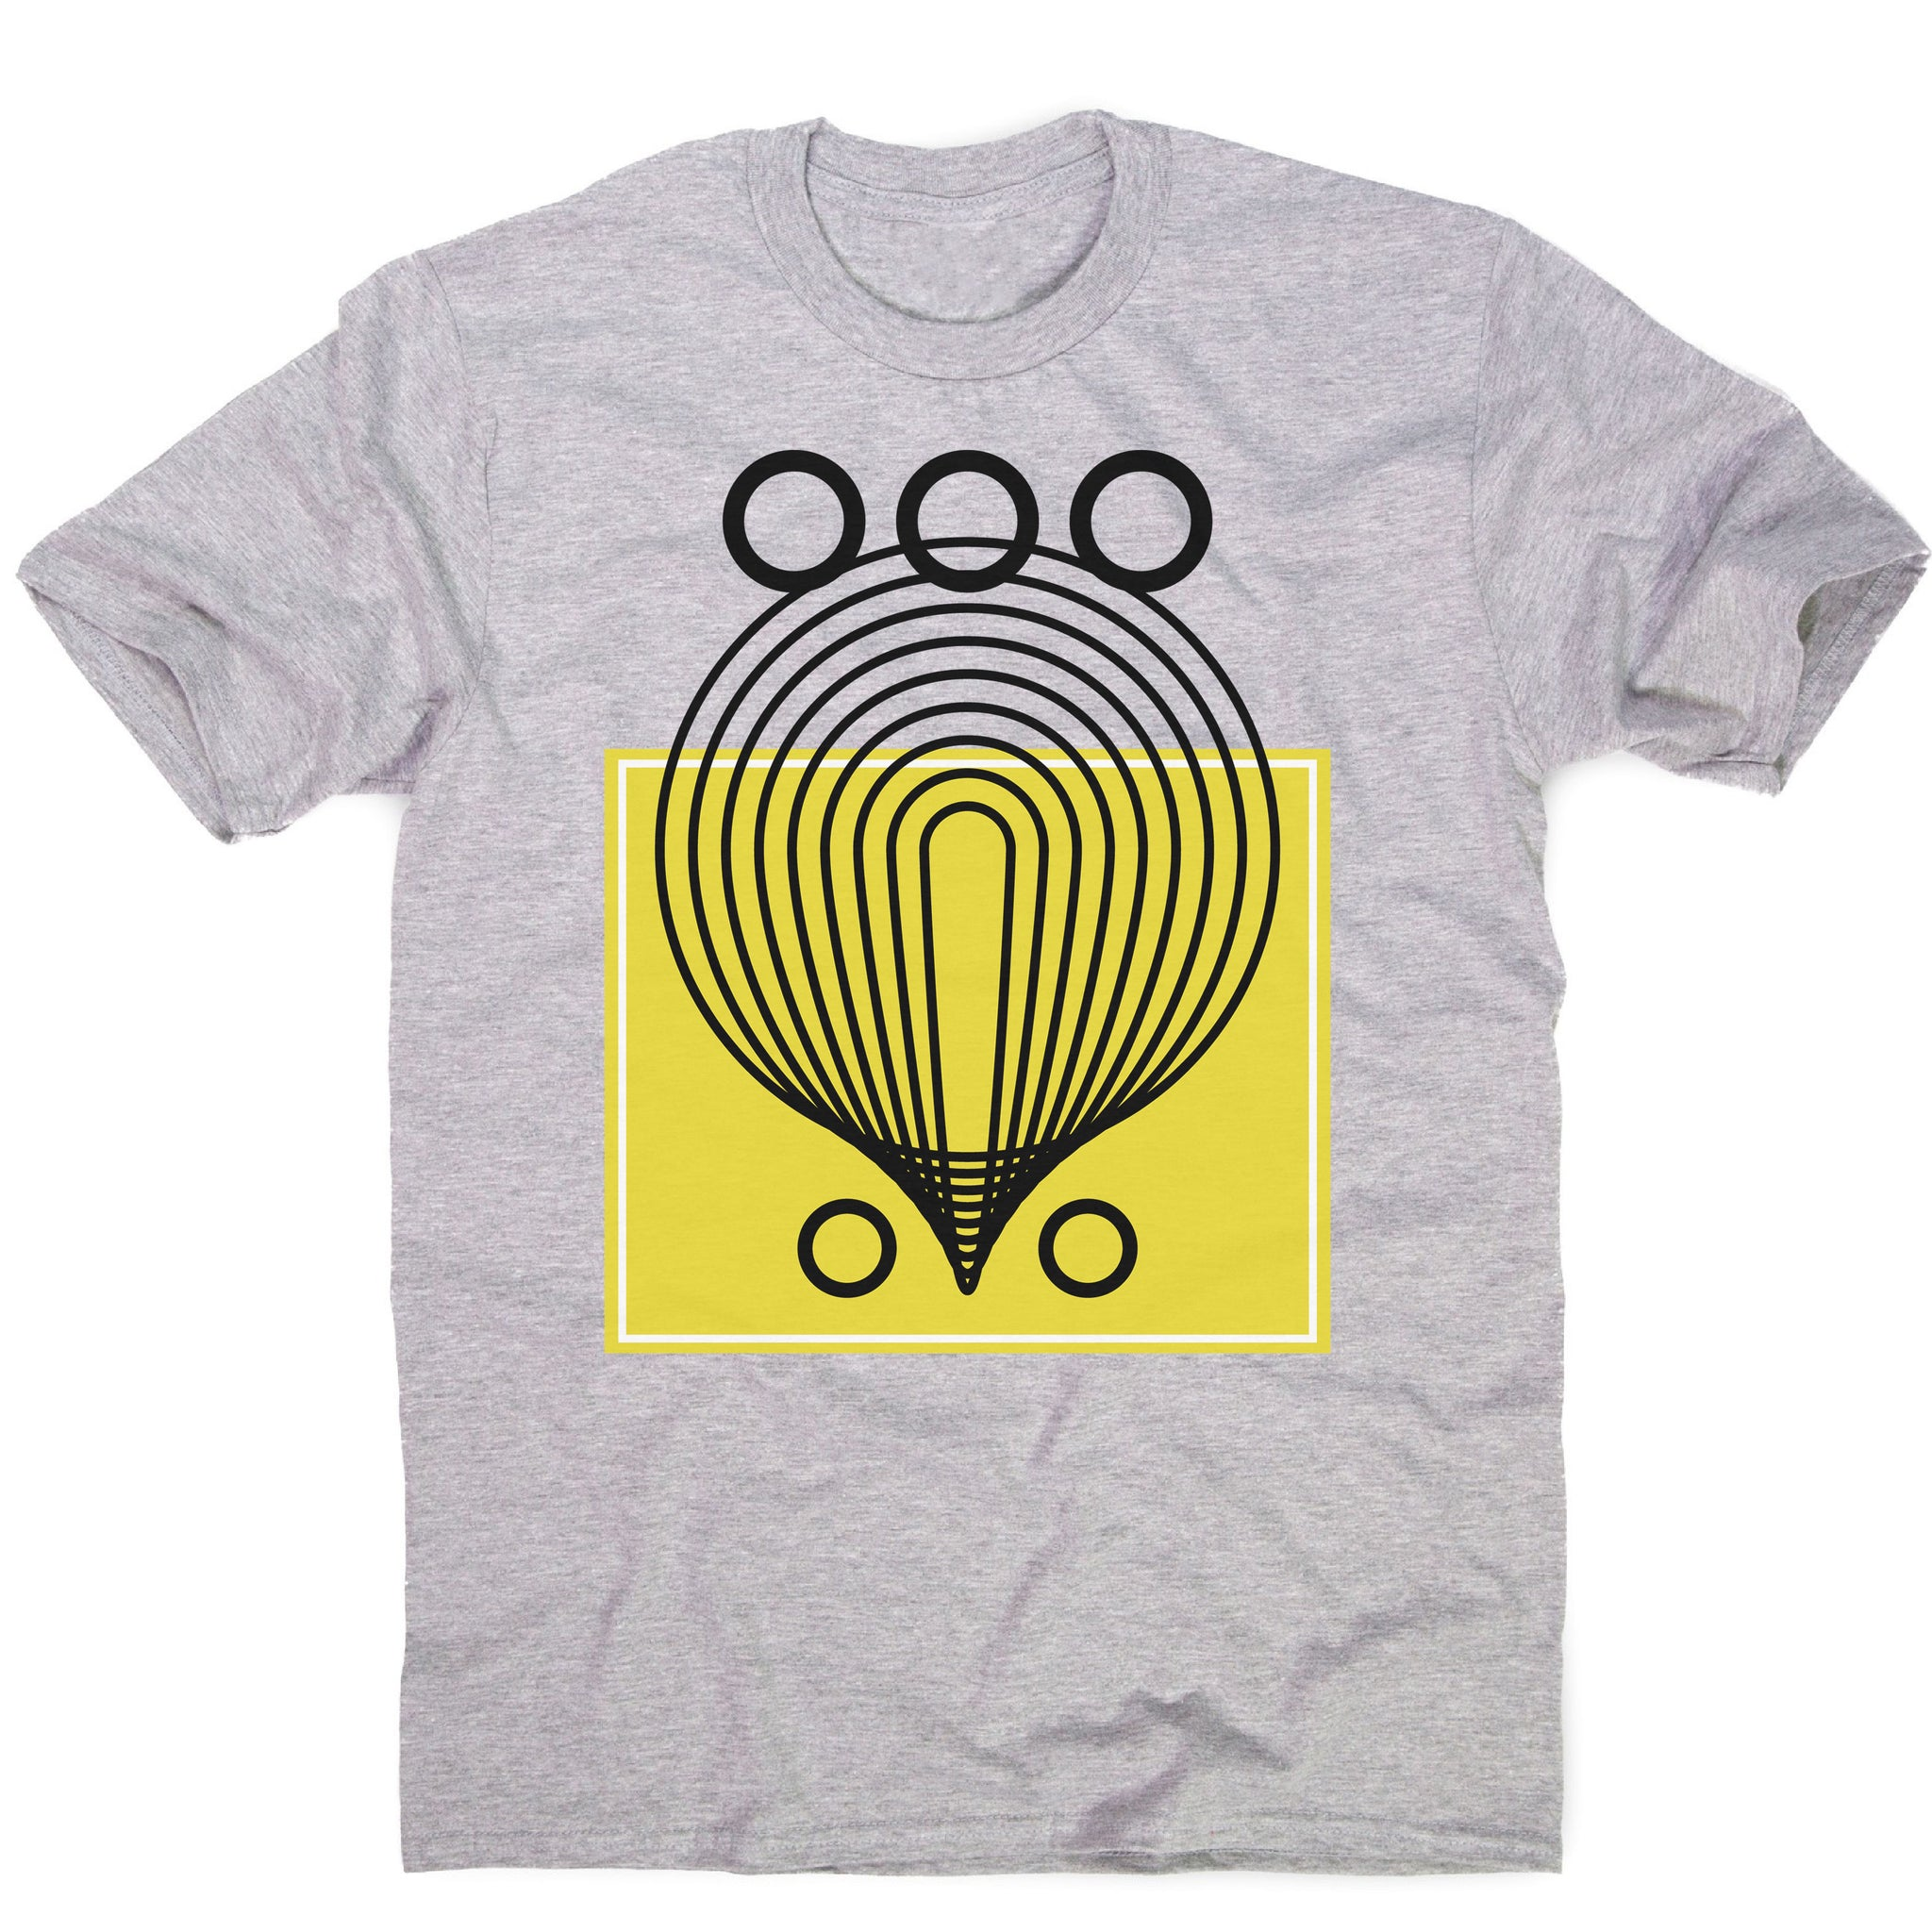 Geometric abstract shapes men's t-shirt